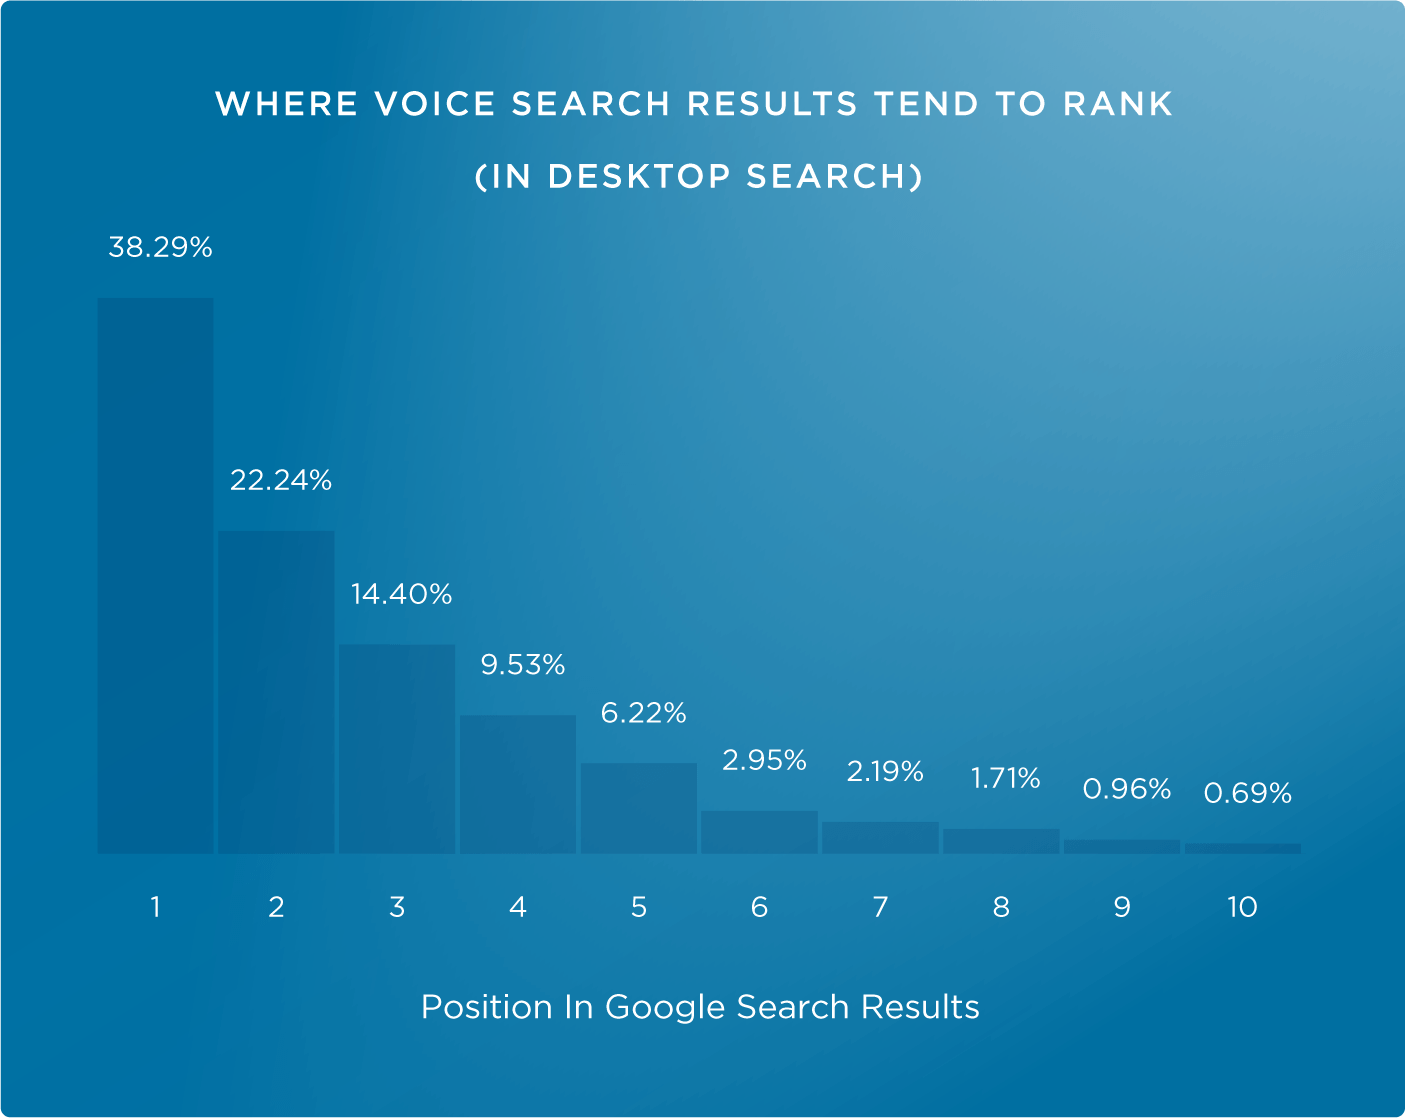 75% of voice search results rank in the top 3 for that query